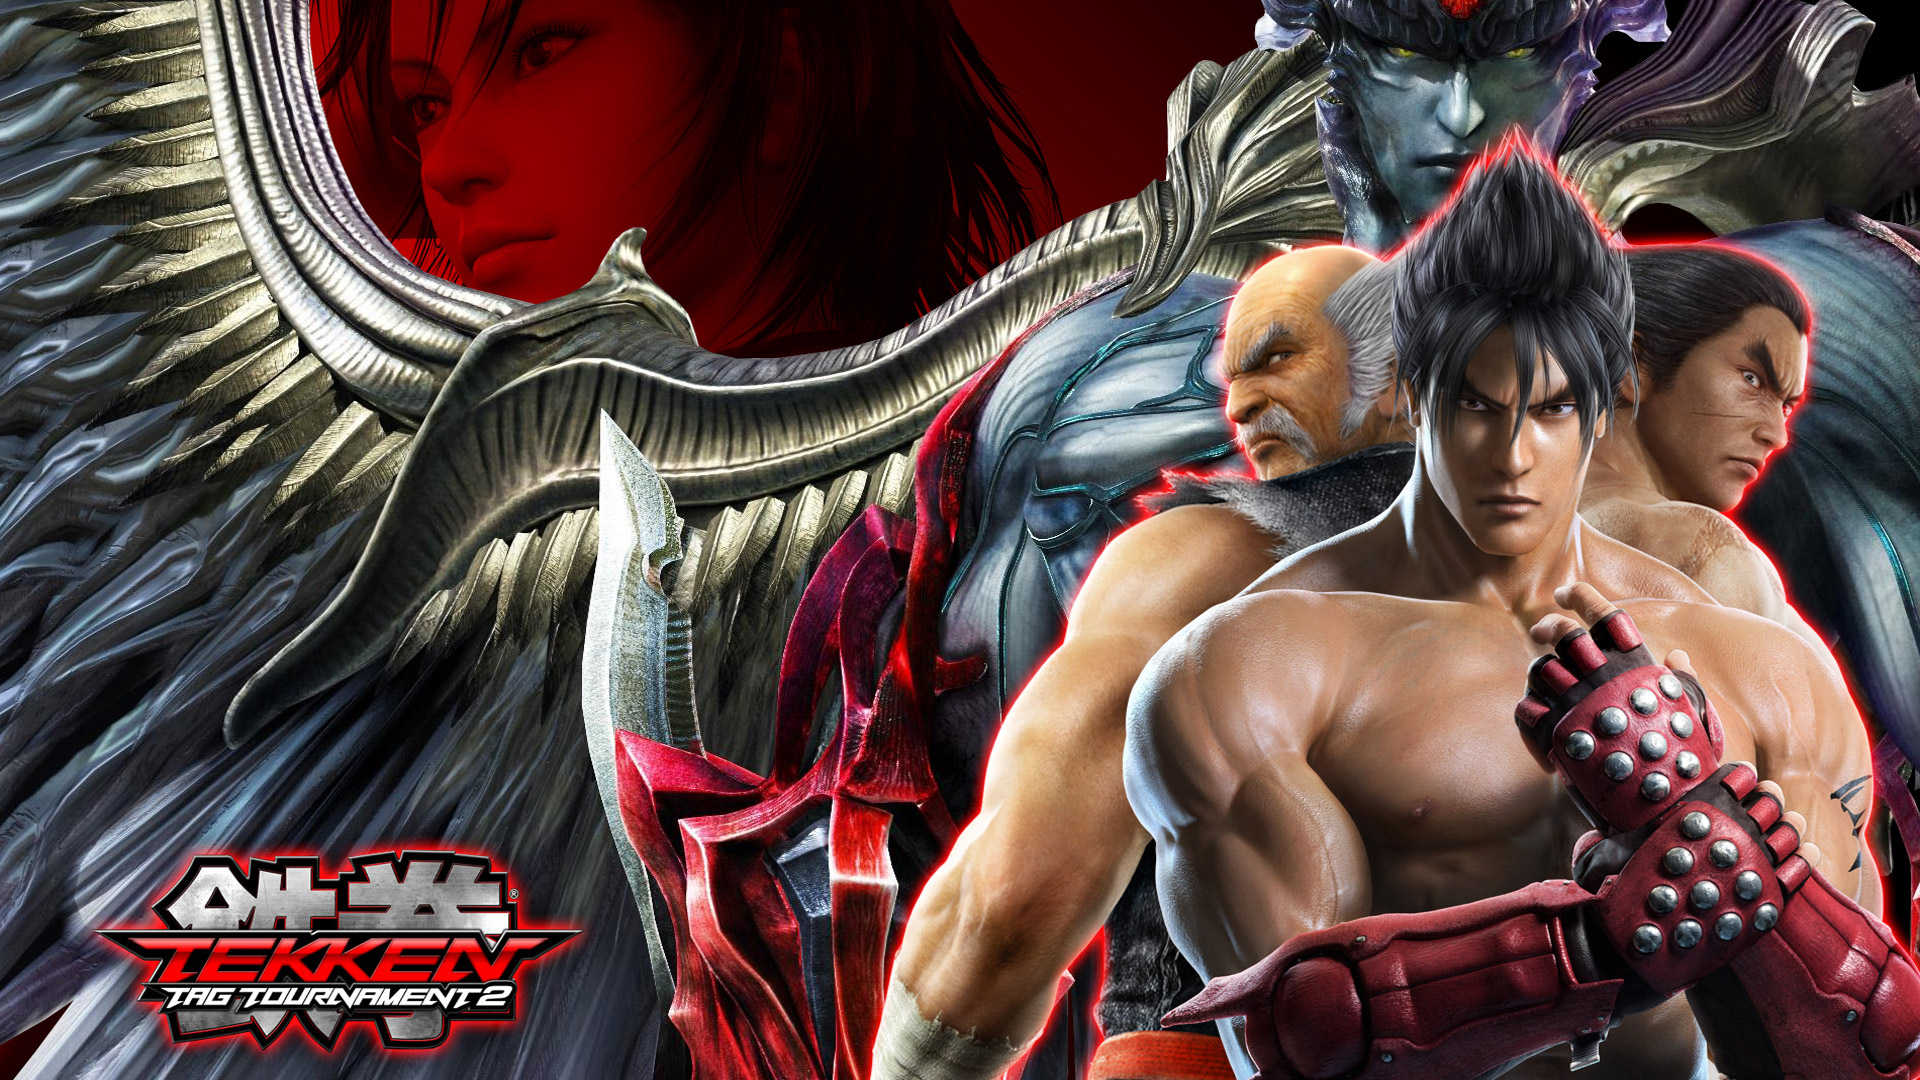 Tekken Tag Tournament 2 Wallpaper in 1920x1080 1920x1080